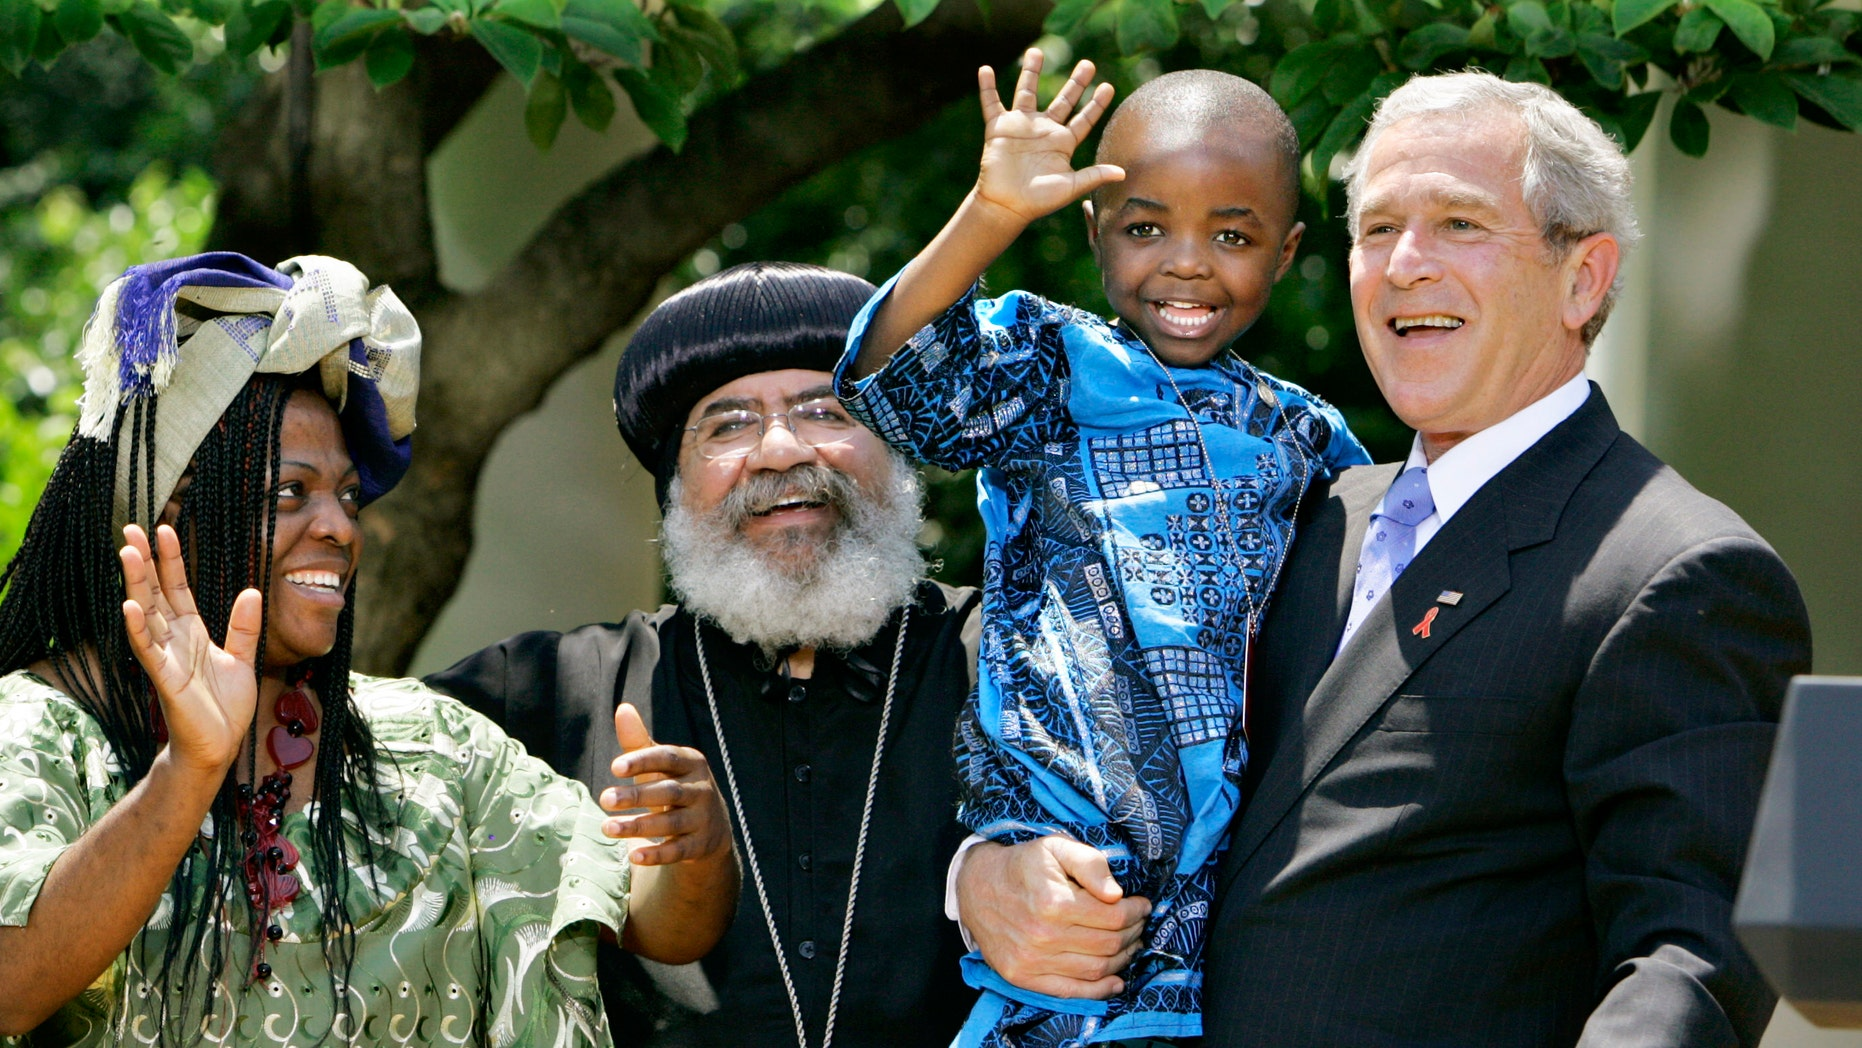 """In this May 30, 2007, file photo President Bush, right, hoists 4-year-old Baron Mosima Loyiso Tantoh, son of Manyongo Mosima """"Kuene"""" Tantoh of South Africa, left, who is HIV-positive, after speaking about his efforts to fight HIV/AIDS worldwide, in the Rose Garden of the White House in Washington."""